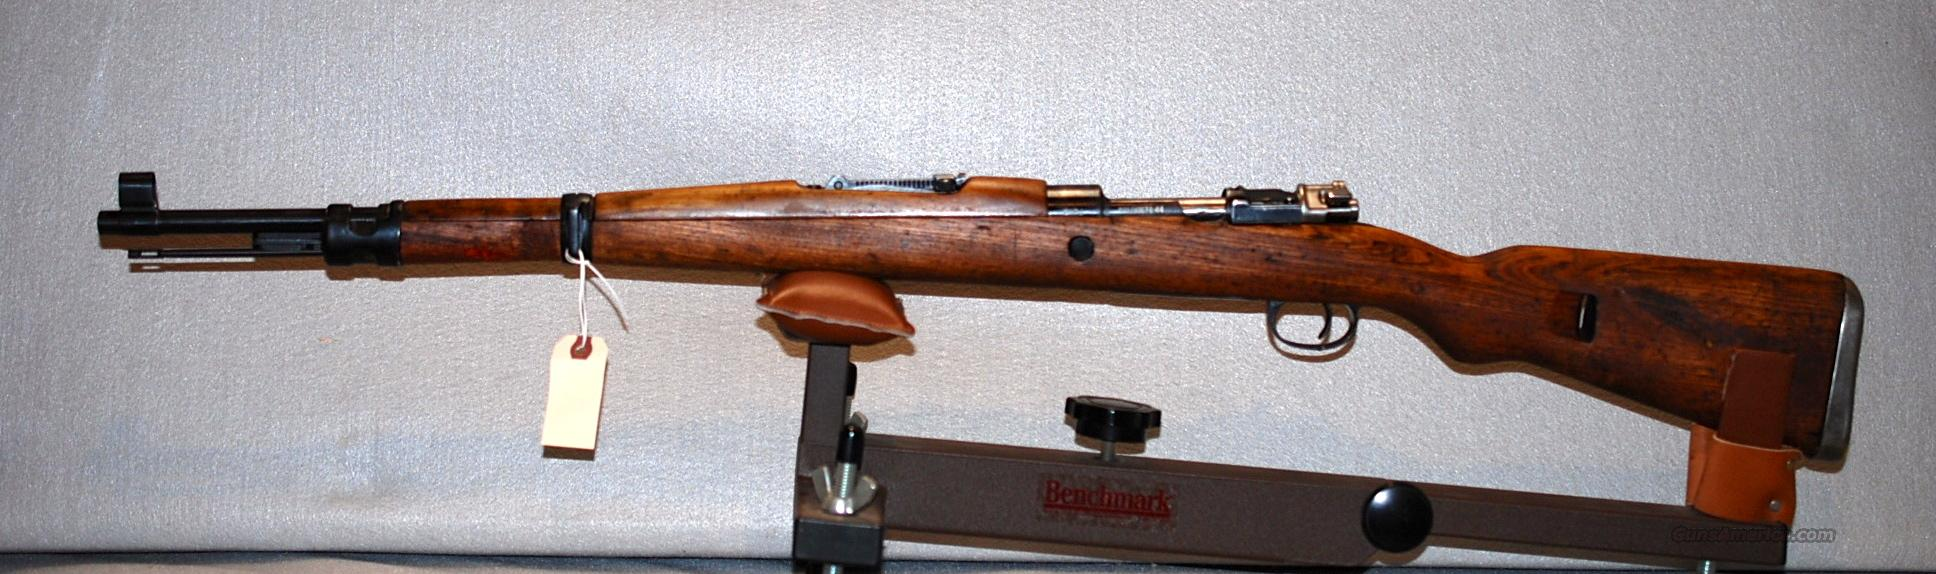 Mauser, K98 Yugo, model 48  Guns > Rifles > Mauser Rifles > German